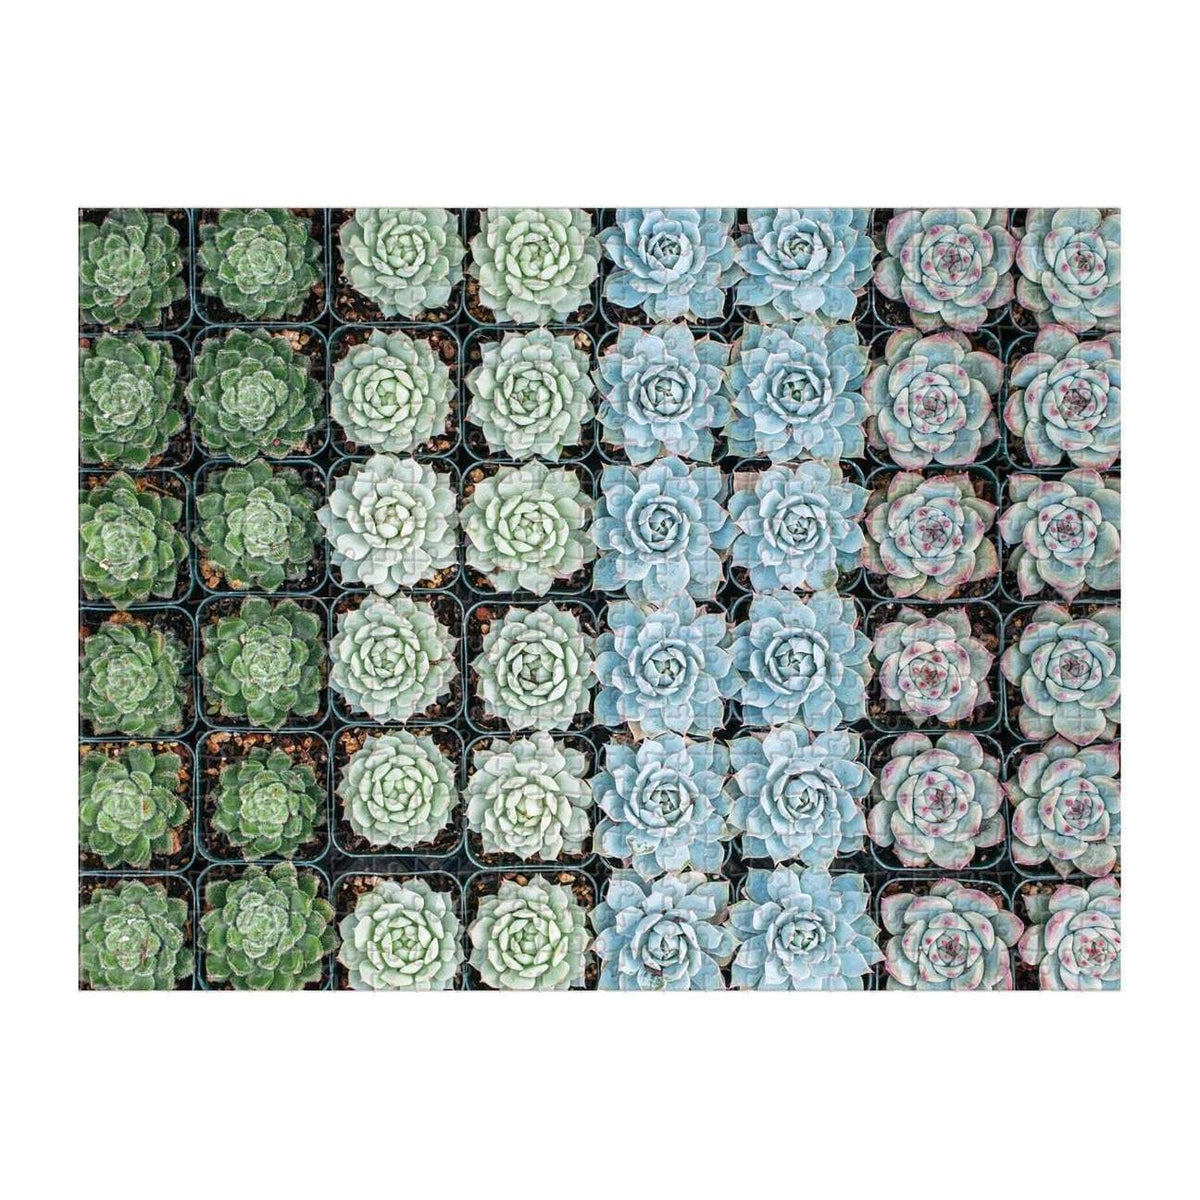 Succulent Garden 500 Piece Double-Sided Puzzle - Quick Ship - Puzzlicious.com